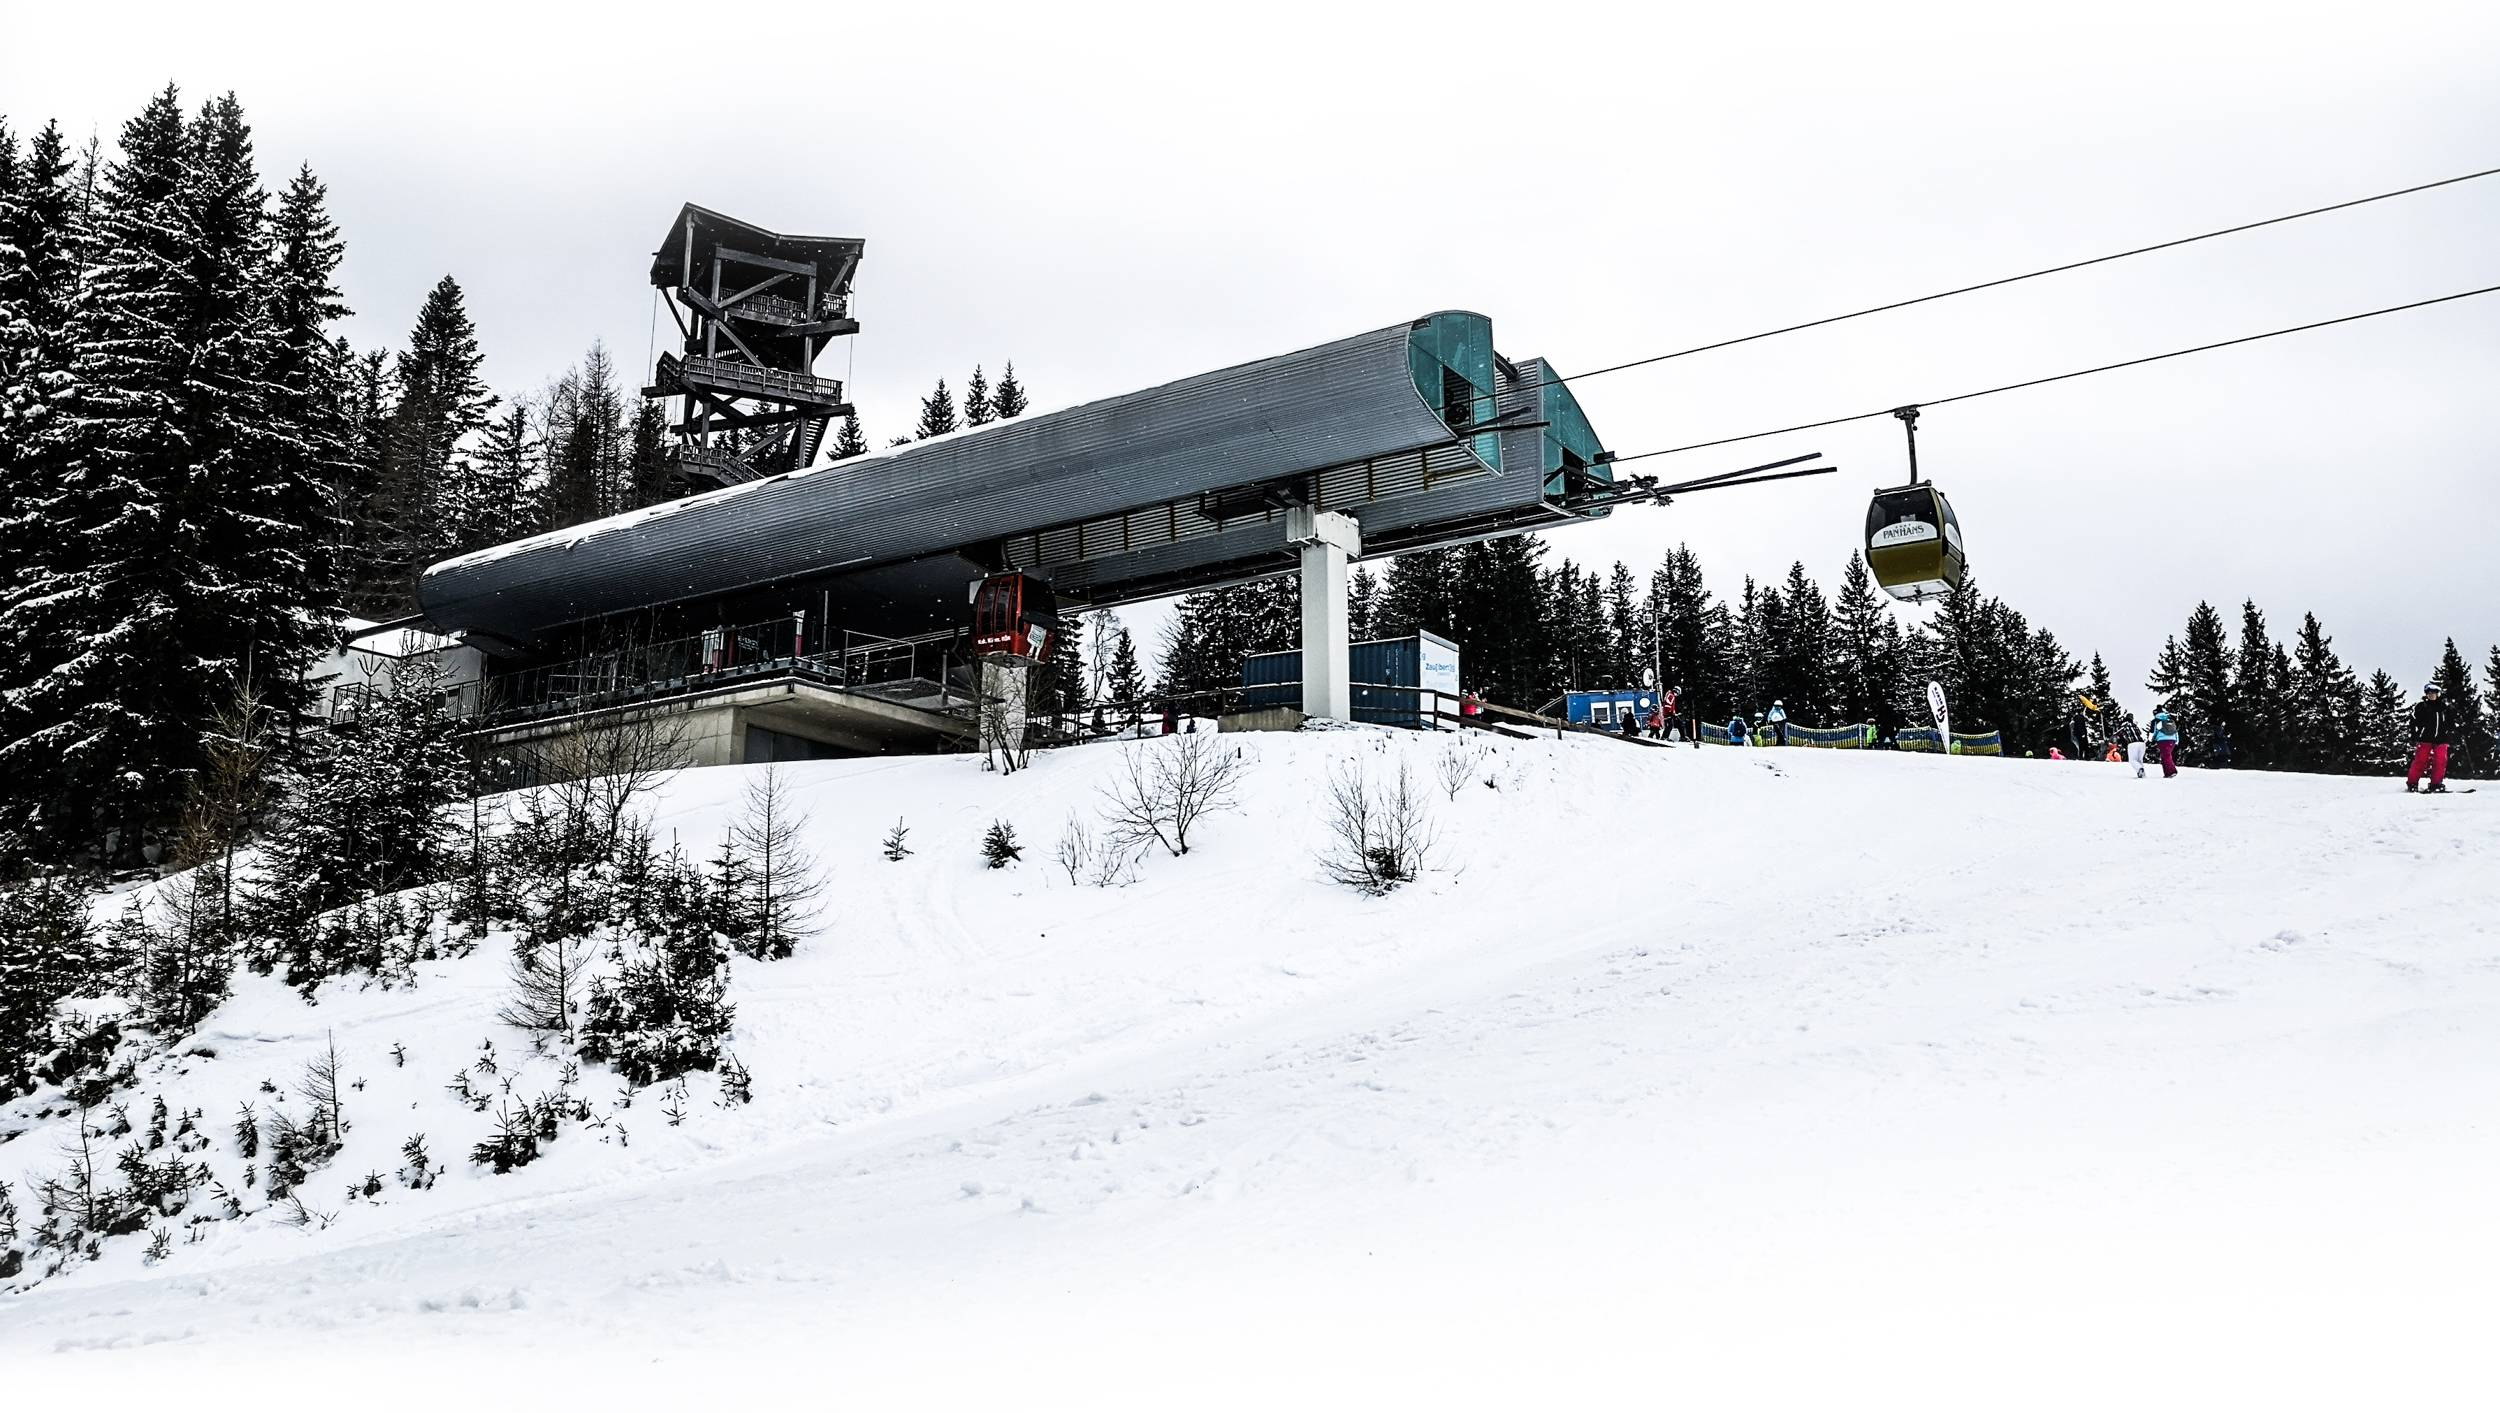 With a Ski-Pass gondola could be used as wanted. Photo by Alis Monte [CC BY-SA 4.0], via Connecting the Dots